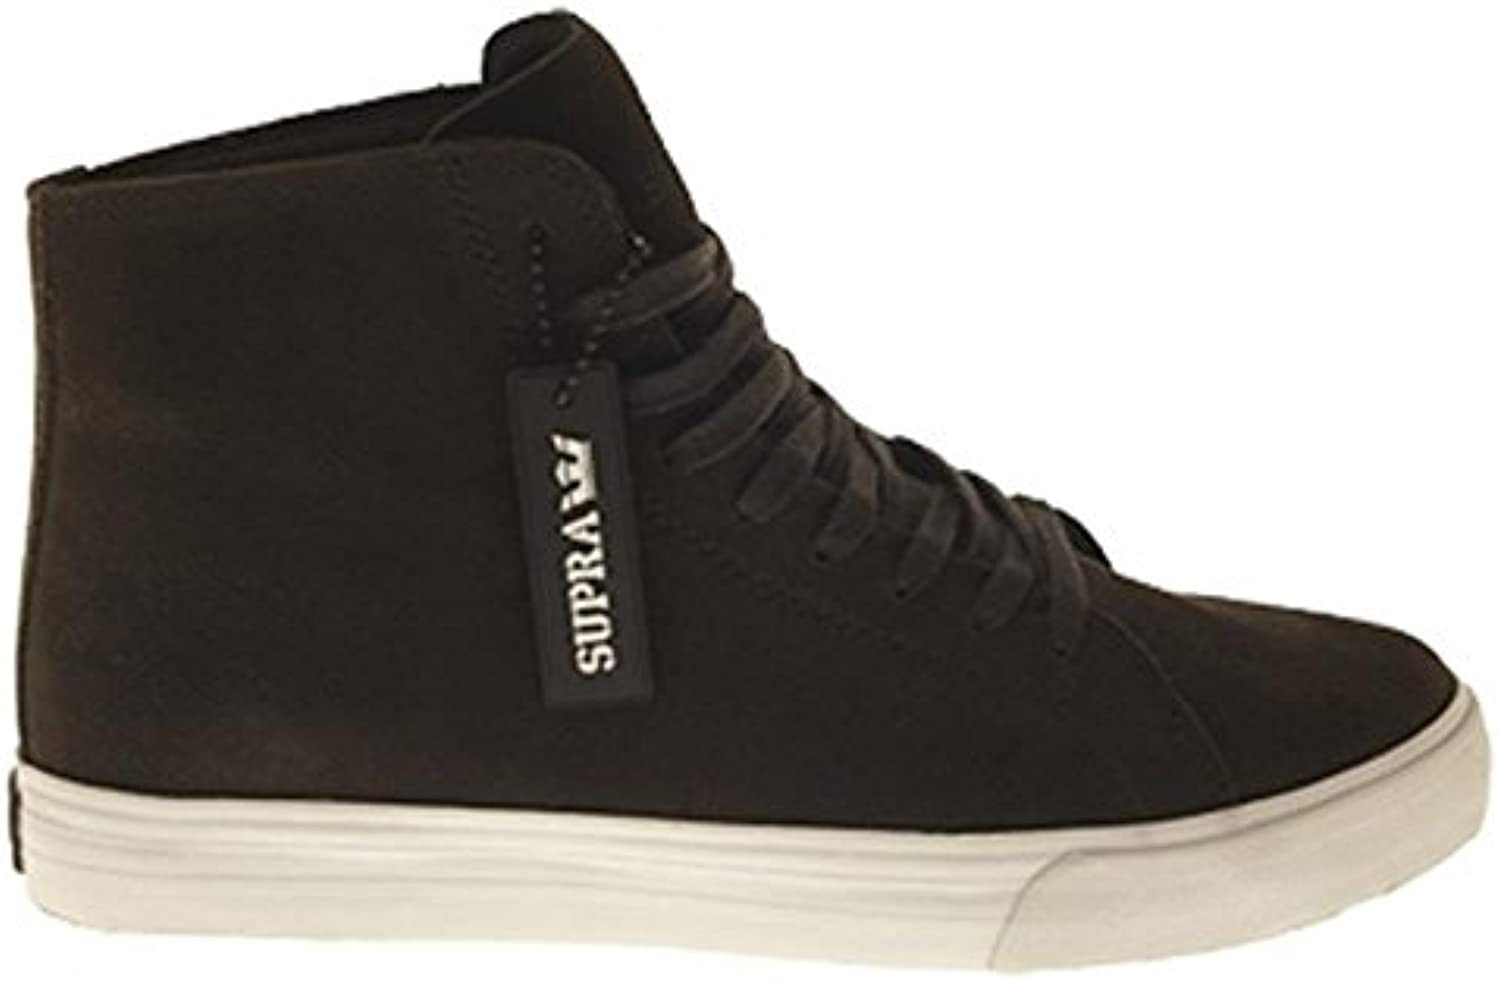 SUPRA Skateboard Styler Shoes Thunder High Brown Suede, número de zapato:42.5  -